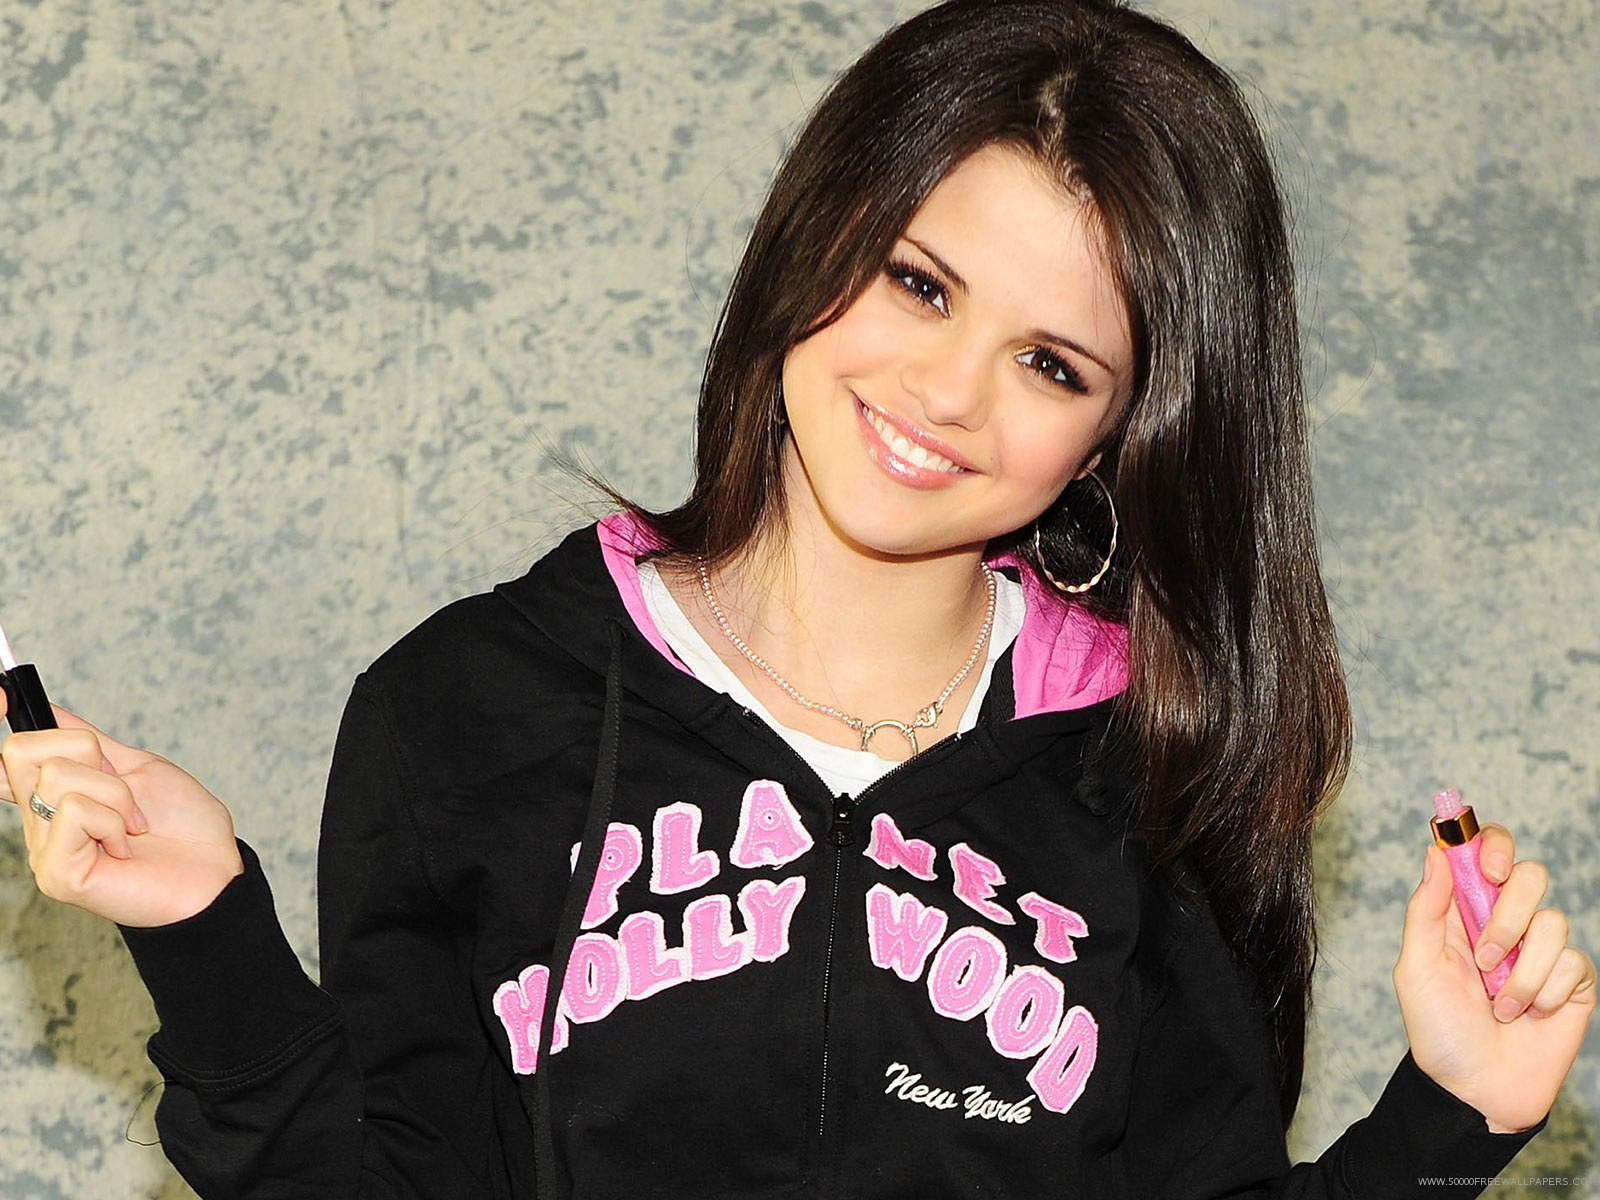 Selena gomez sayings music selena gomez wallpaper